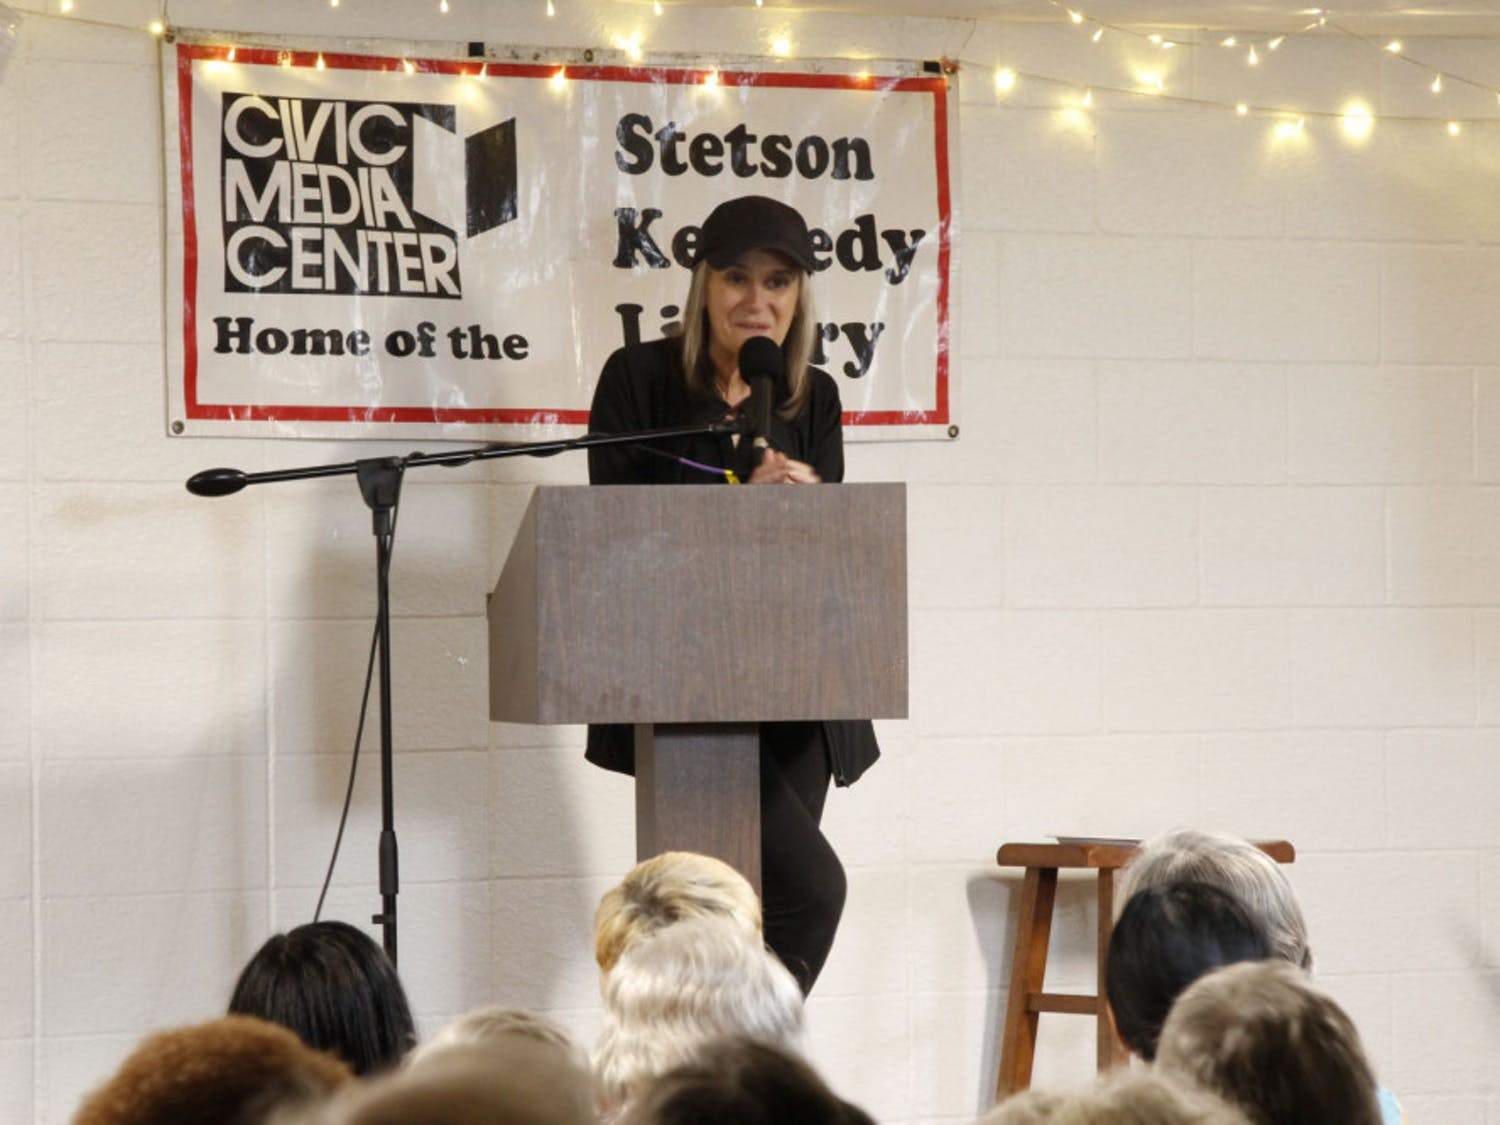 Amy Goodman spoke before an estimated audience of 250 people at Working Food Community Center Friday, Oct. 19, 2018. The event was held to celebrate the Civic Media Center's 25th Anniversary.